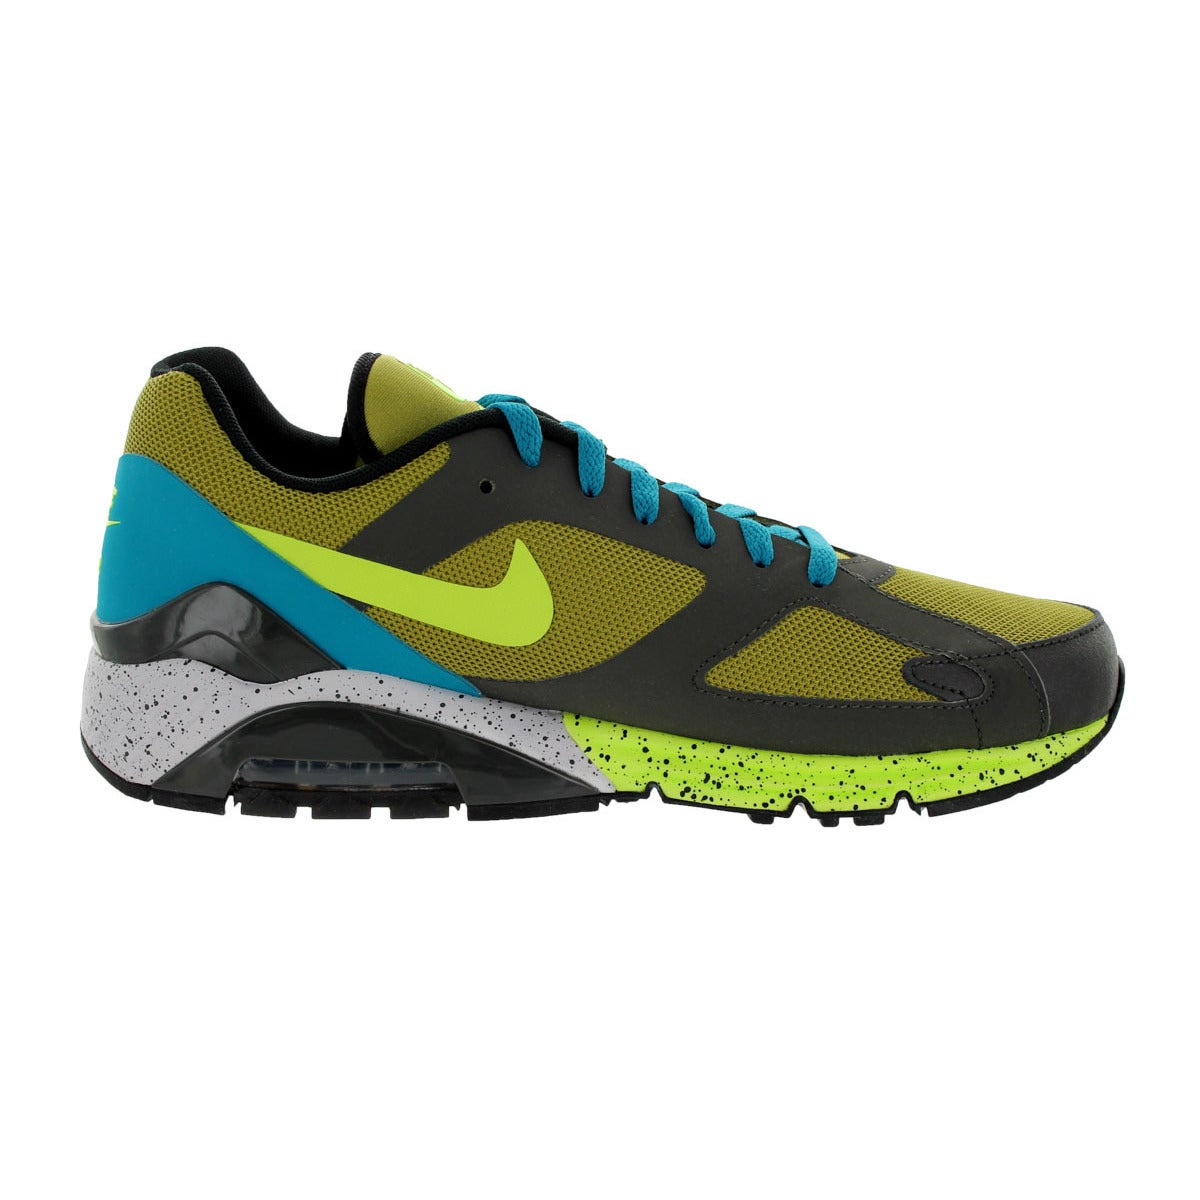 reputable site 6247e 83332 ... netherlands nike mens air max terra 180 gold multicolored suede running  shoe free shipping today overstock